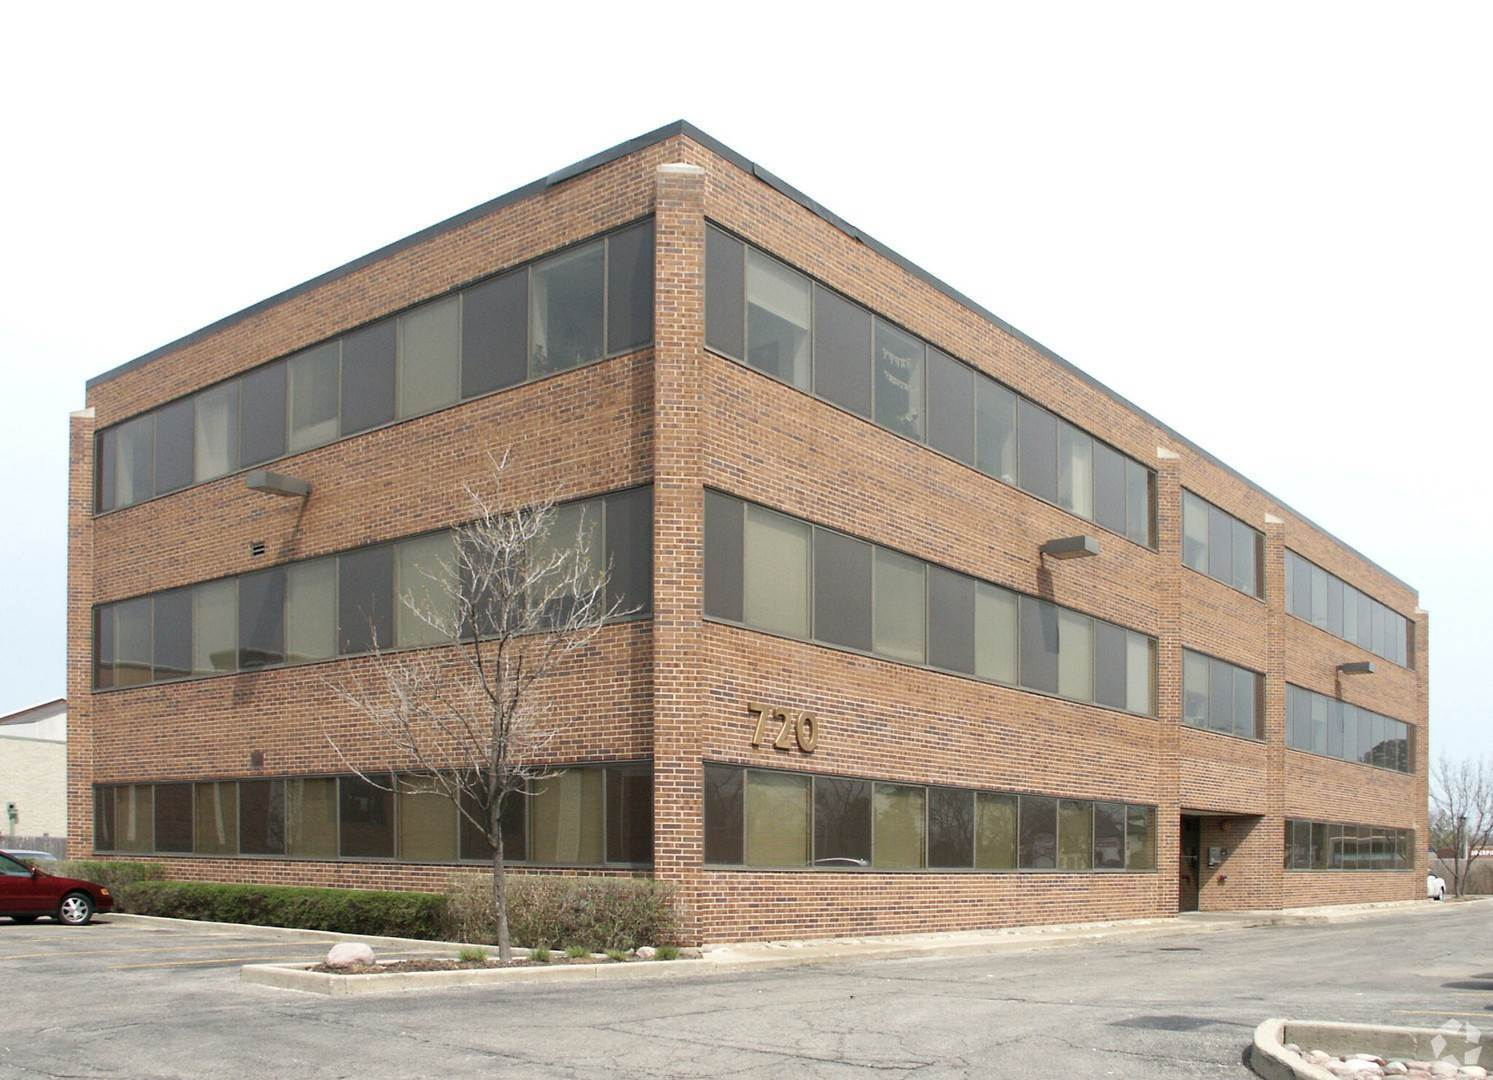 Commercial à 720 Osterman Avenue Deerfield, Illinois 60015 États-Unis